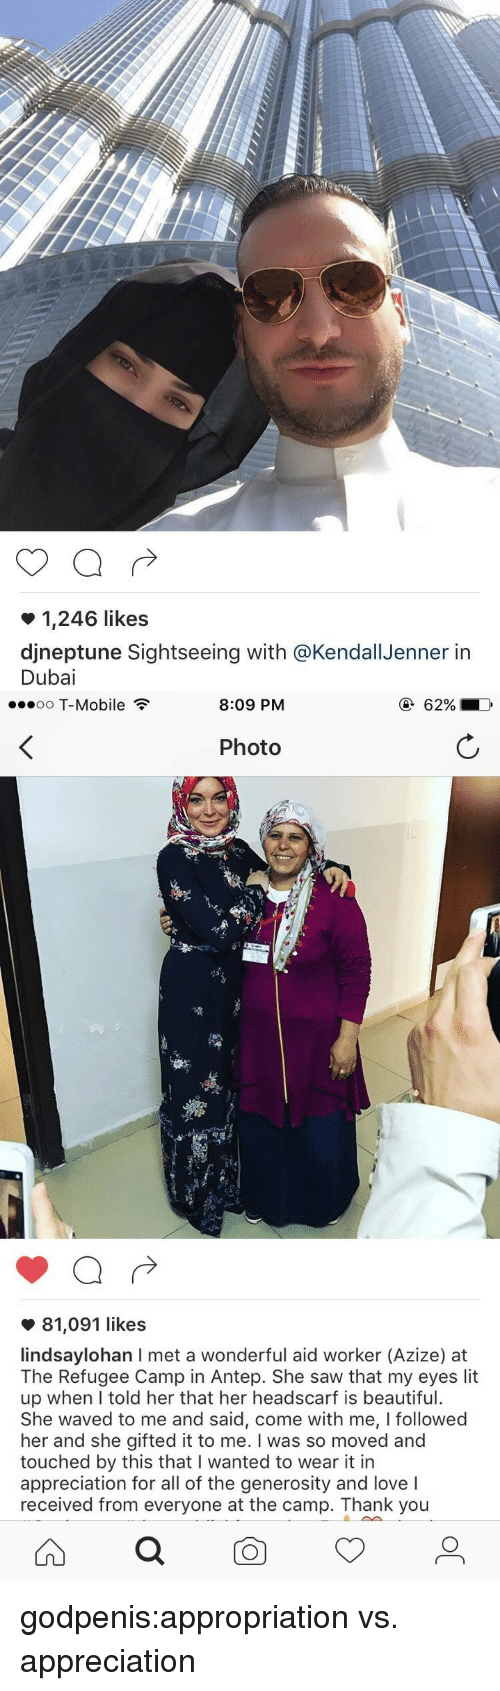 Beautiful, Lit, and Love: 1,246 likes  djneptune Sightseeing with @KendallJenner itn  Dubai   oo T-Mobile  8:09 PM  Photo  81,091 likes  lindsaylohan I met a wonderful aid worker (Azize) at  The Refugee Camp in Antep. She saw that my eyes lit  up when lI told her that her headscarf is beautiful.  She waved to me and said, come with me, I followed  her and she gifted it to me. I was so moved and  touched by this that I wanted to wear it in  appreciation for all of the generosity and love I  received from everyone at the camp. Thank you godpenis:appropriation vs. appreciation